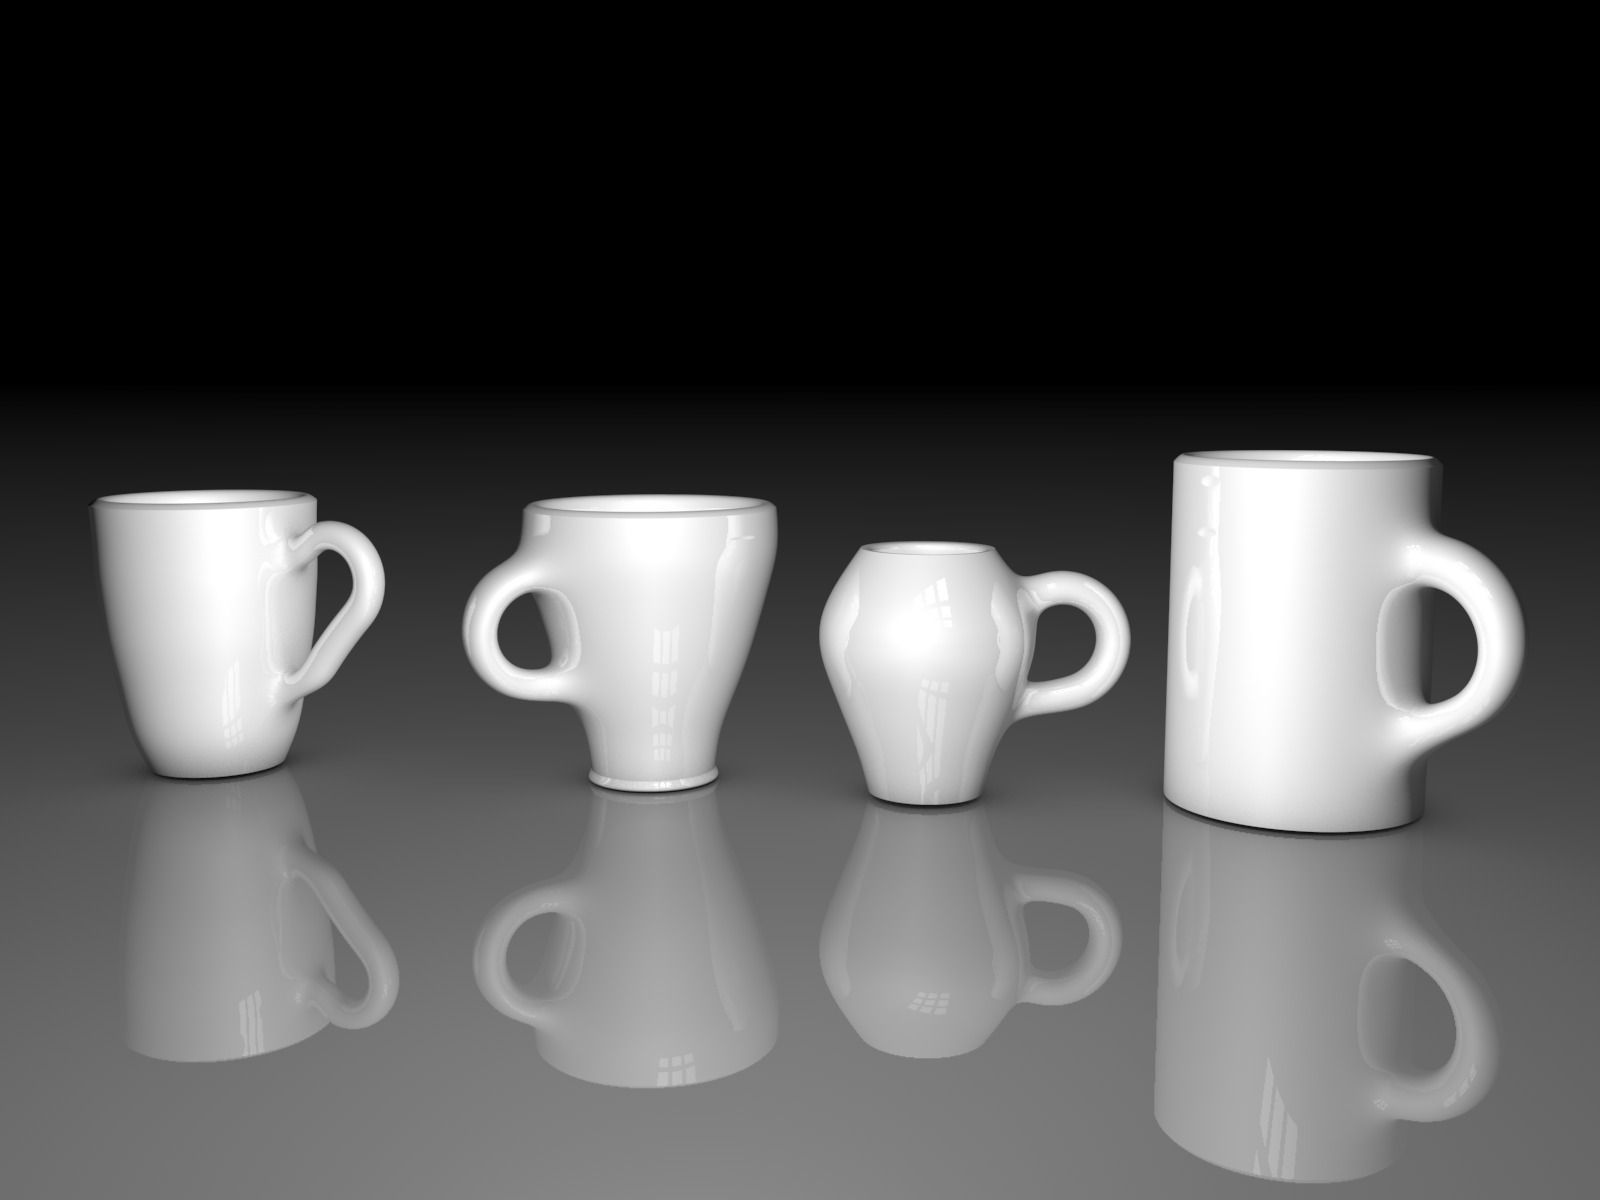 Dazzling Coffee Cup Model Obj Fbx Cupsets Coffee Cup Cgtrader Coffee Cup Images Free Sharepoint Coffee Cup Images Free furniture Coffee Cup Images Free